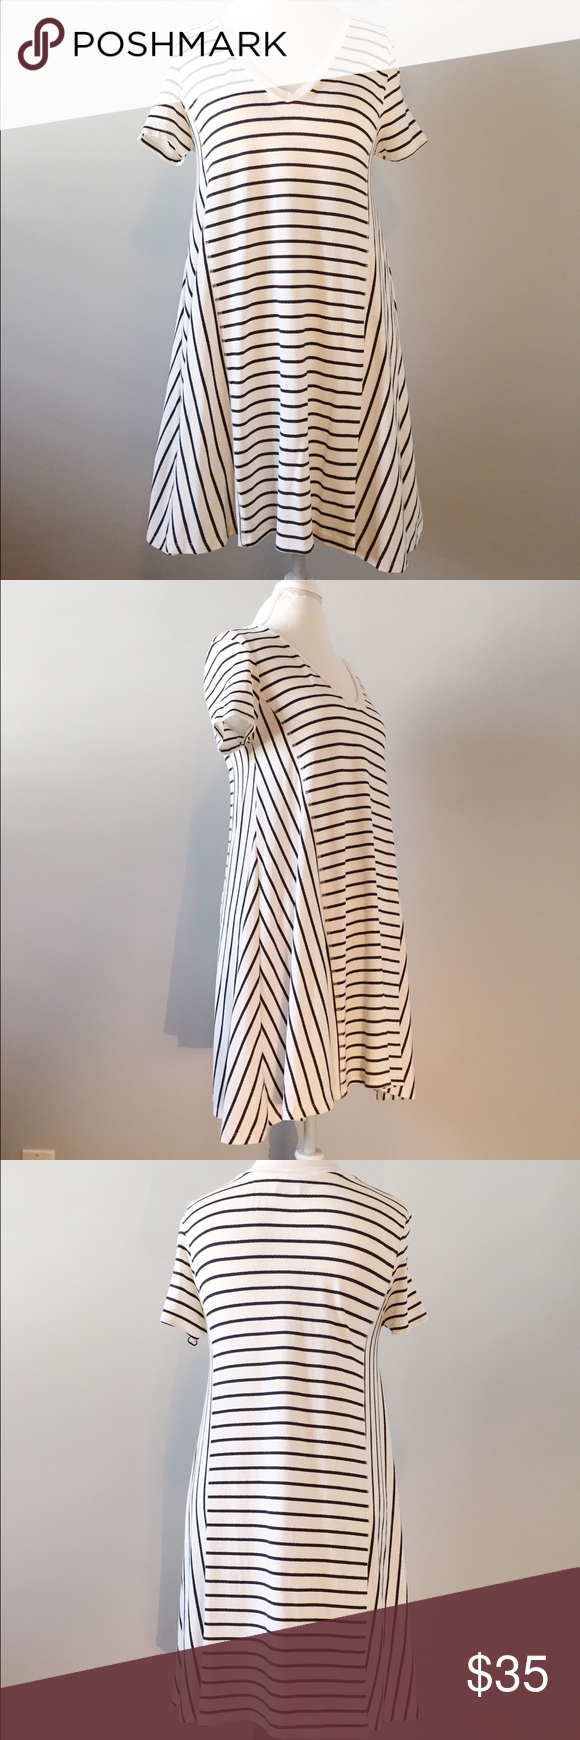 "Zara Striped T-shirt Dress This casual, float dress is perfect for a day of shopping or lunch with friends! It measures 33"" long from shoulder to hem! The stripes are a very dark almost black navy blue color. Zara Dresses Mini"